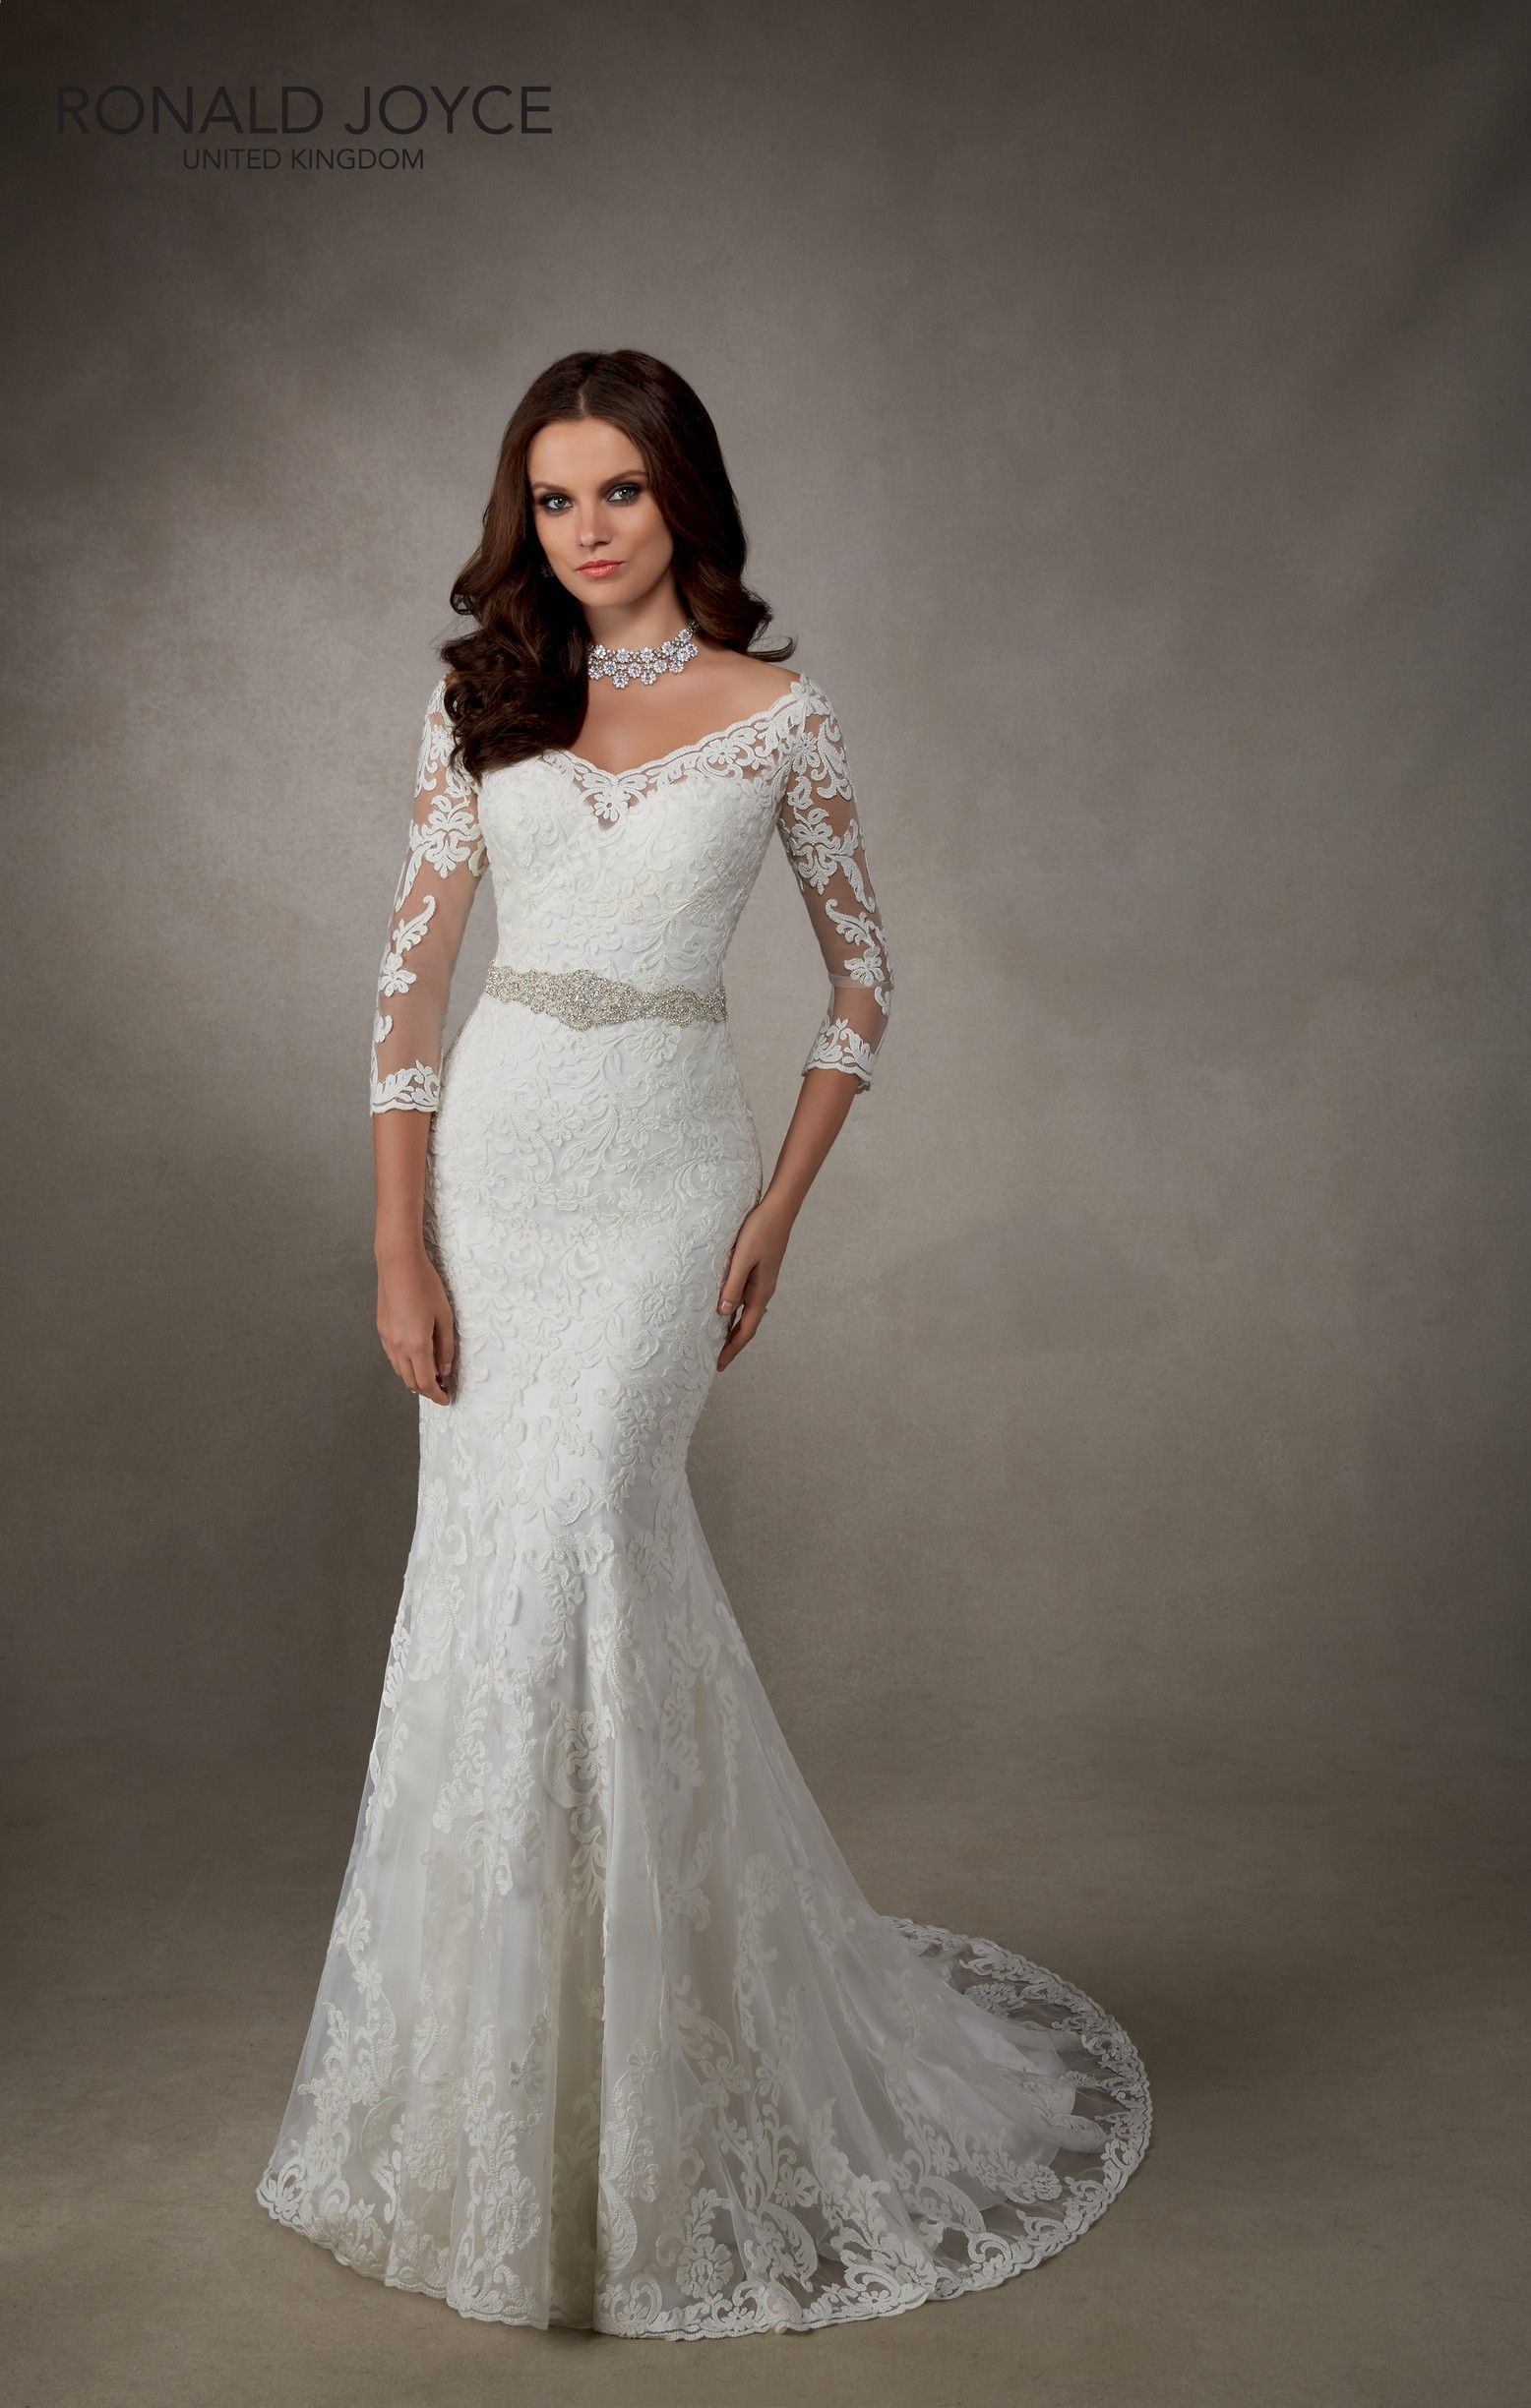 Wedding dresses for full figures  RONALD JOYCE INTERNATIONAL  Wedding dresses and bridal gowns